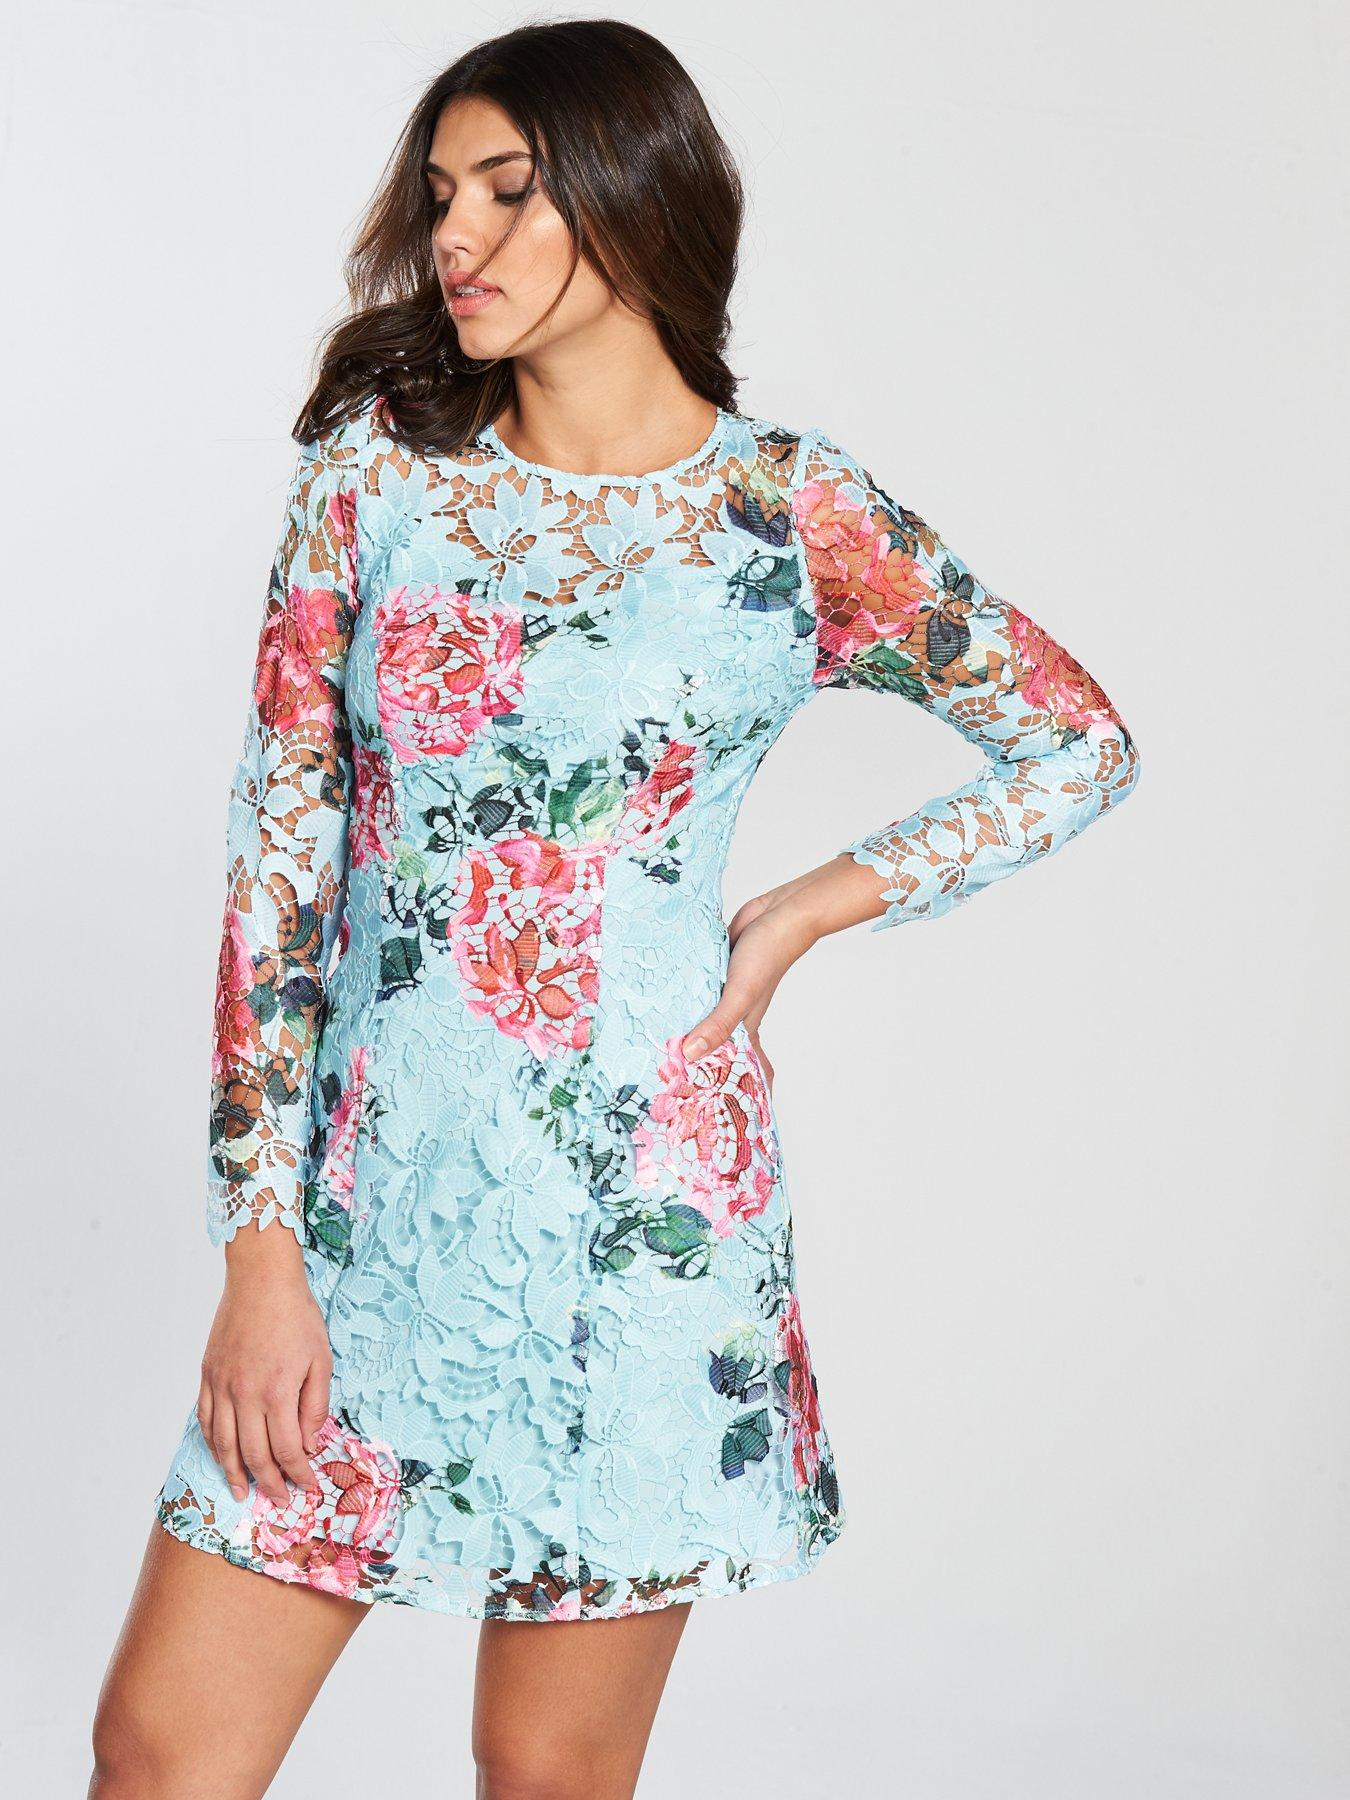 Summer holiday dresses 2018 uk qb